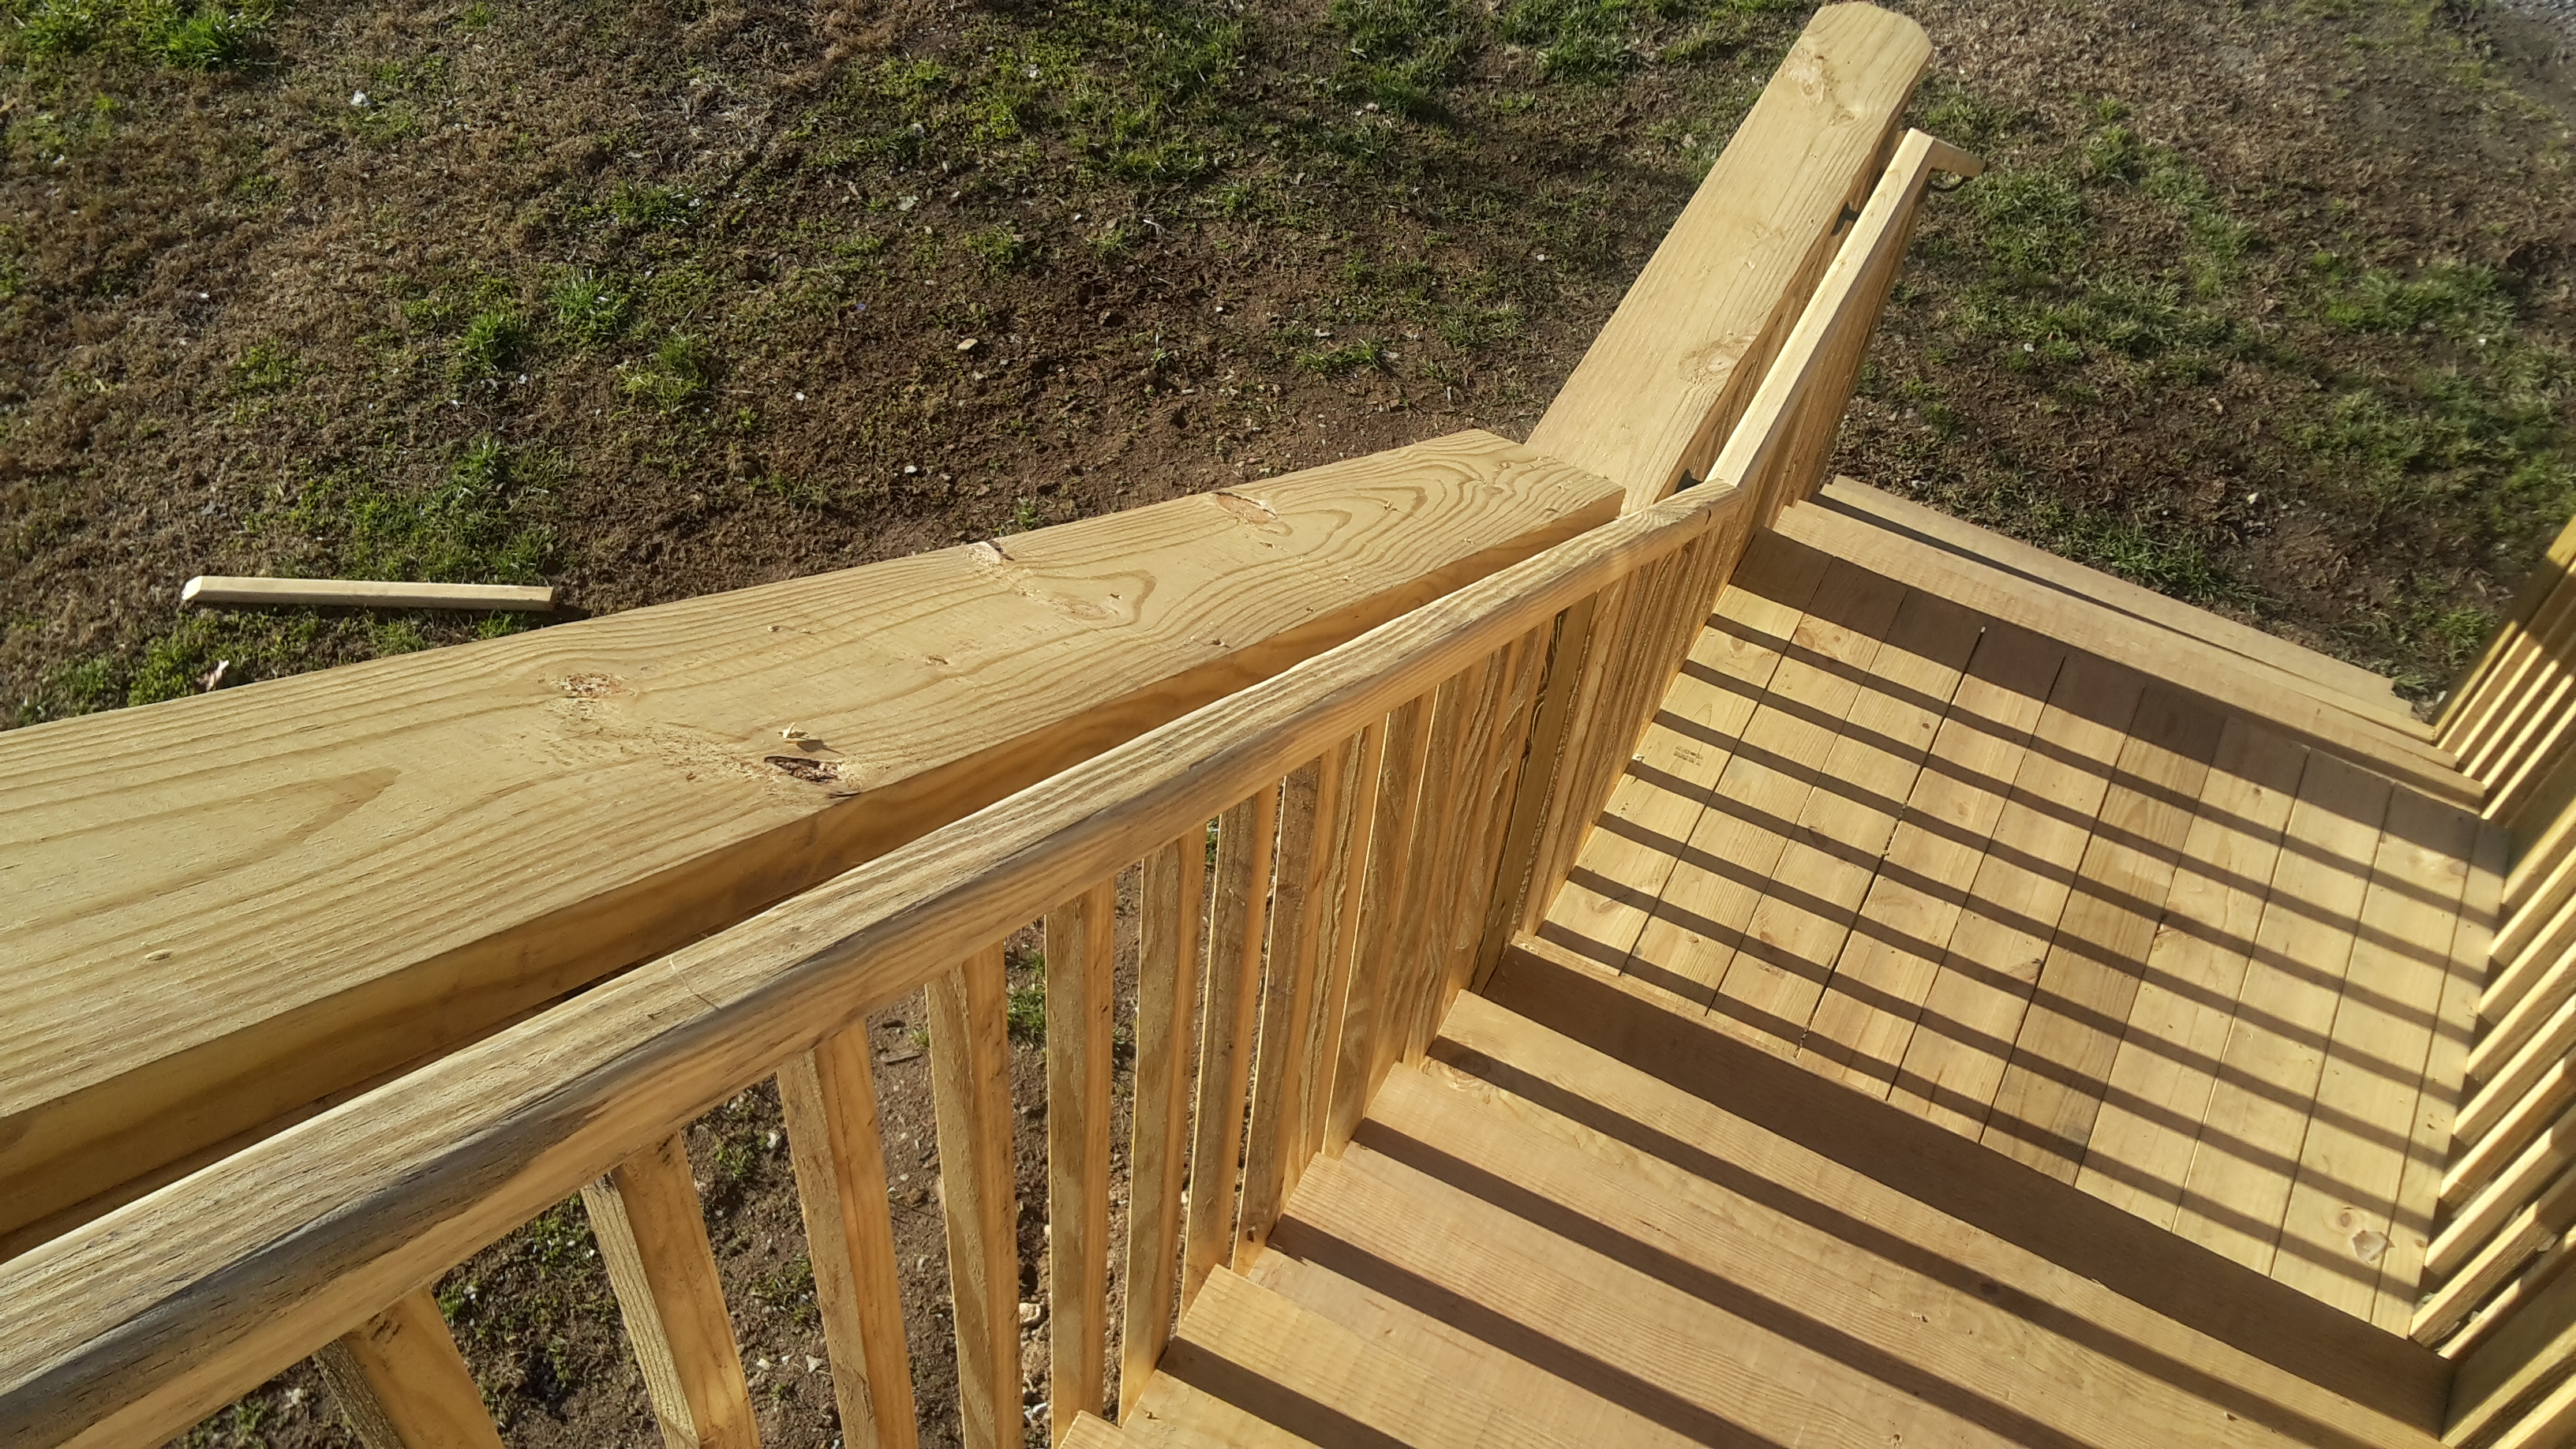 Stair railing height for decks, ramps, and interiors